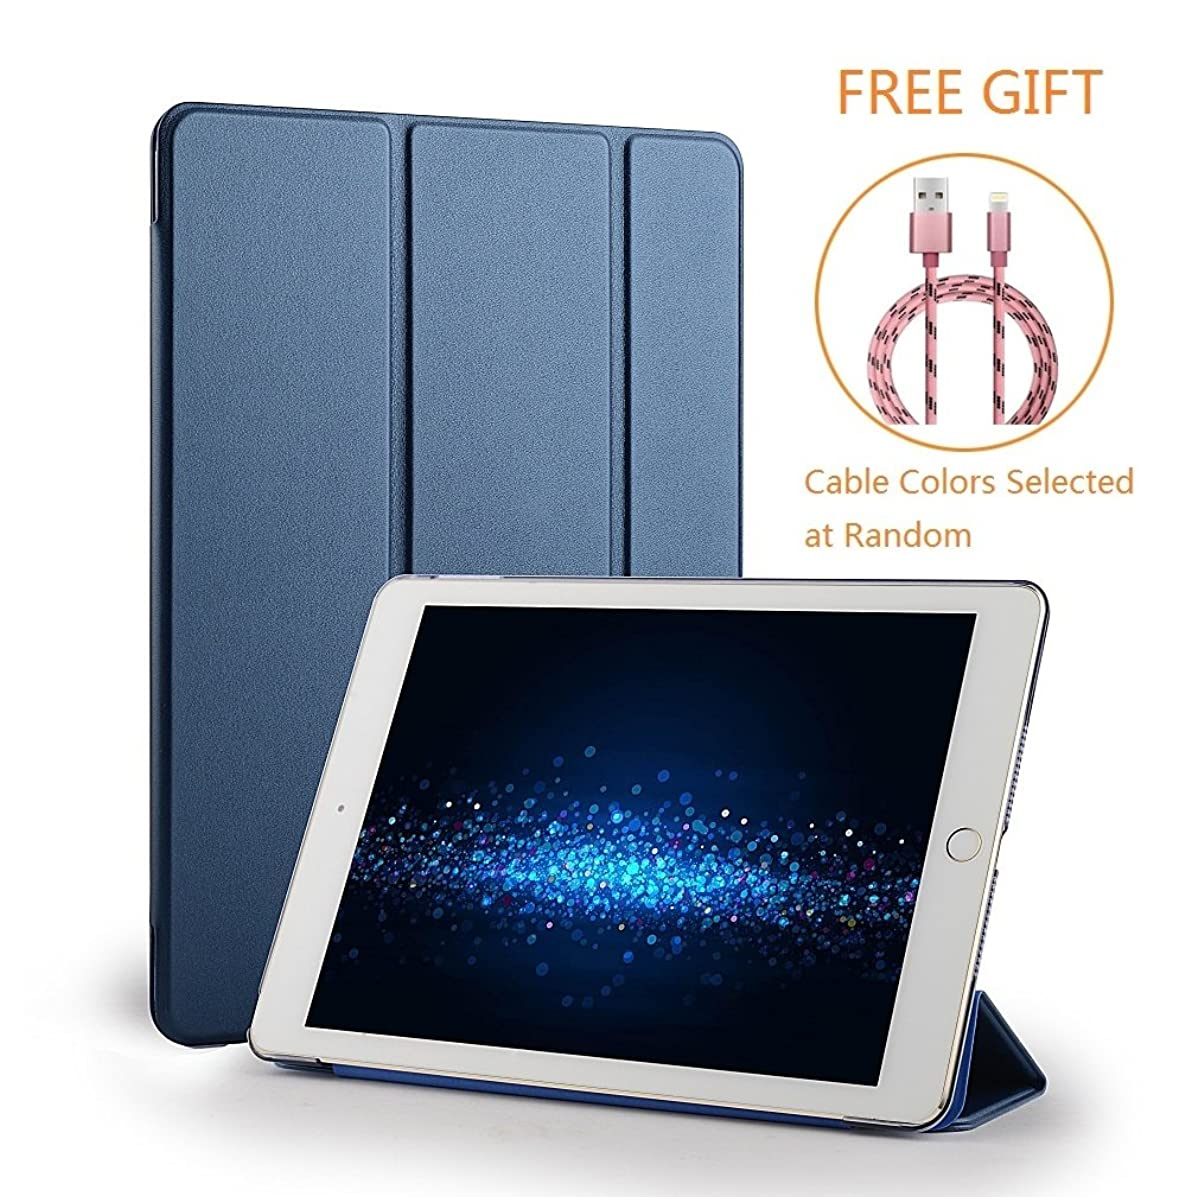 iPad Mini 3 Case Cover, CTsing Tri-fold Stand Case with Magnetic Auto Wake & Sleep Function for iPad Mini3/2/1(Not for Mini 4), Rose gold